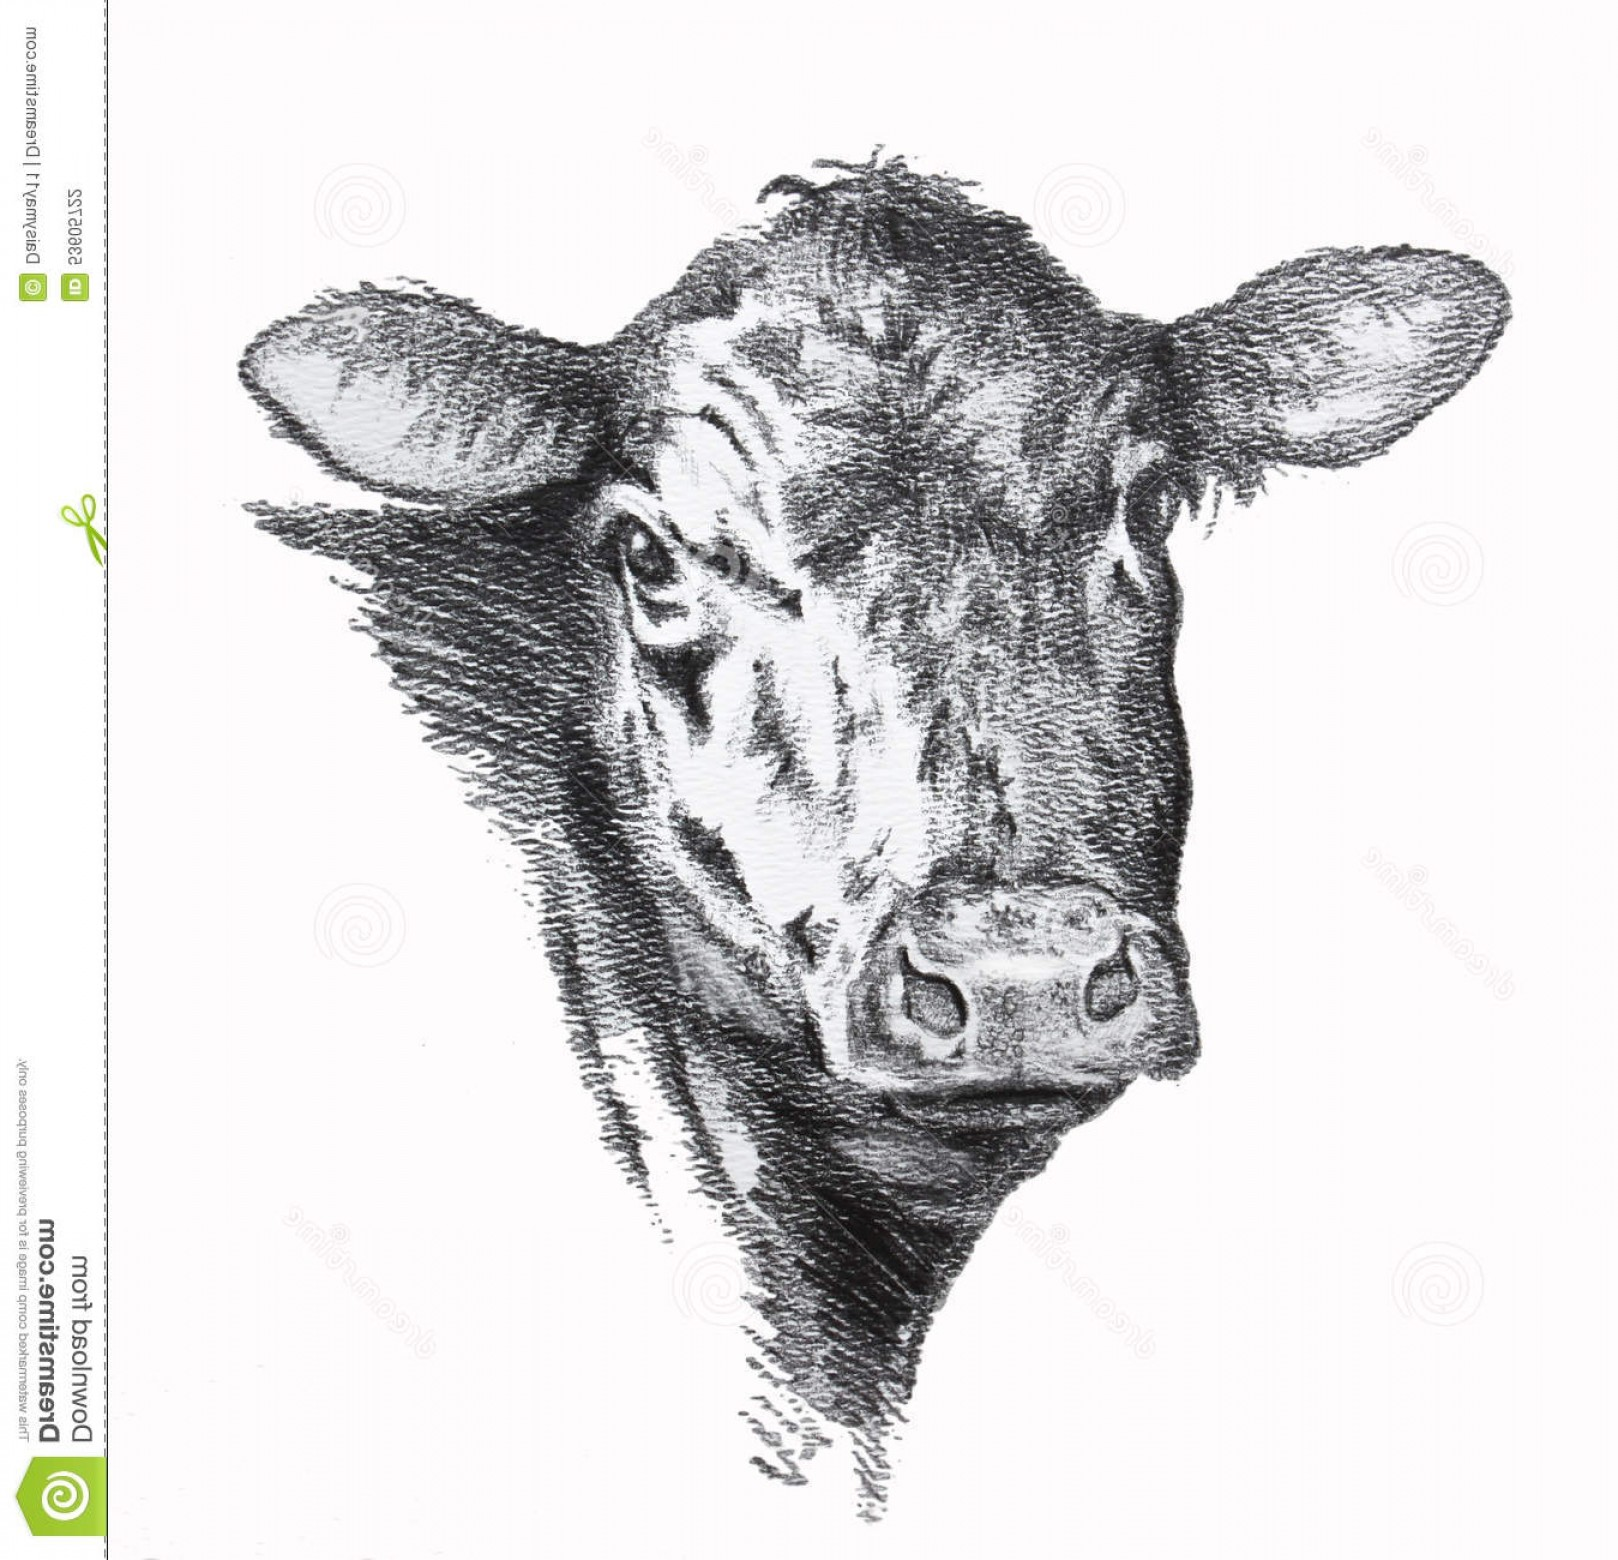 1618x1560 Stock Illustration Cow Pencil Drawing Black Angus Beef Image Arenawp